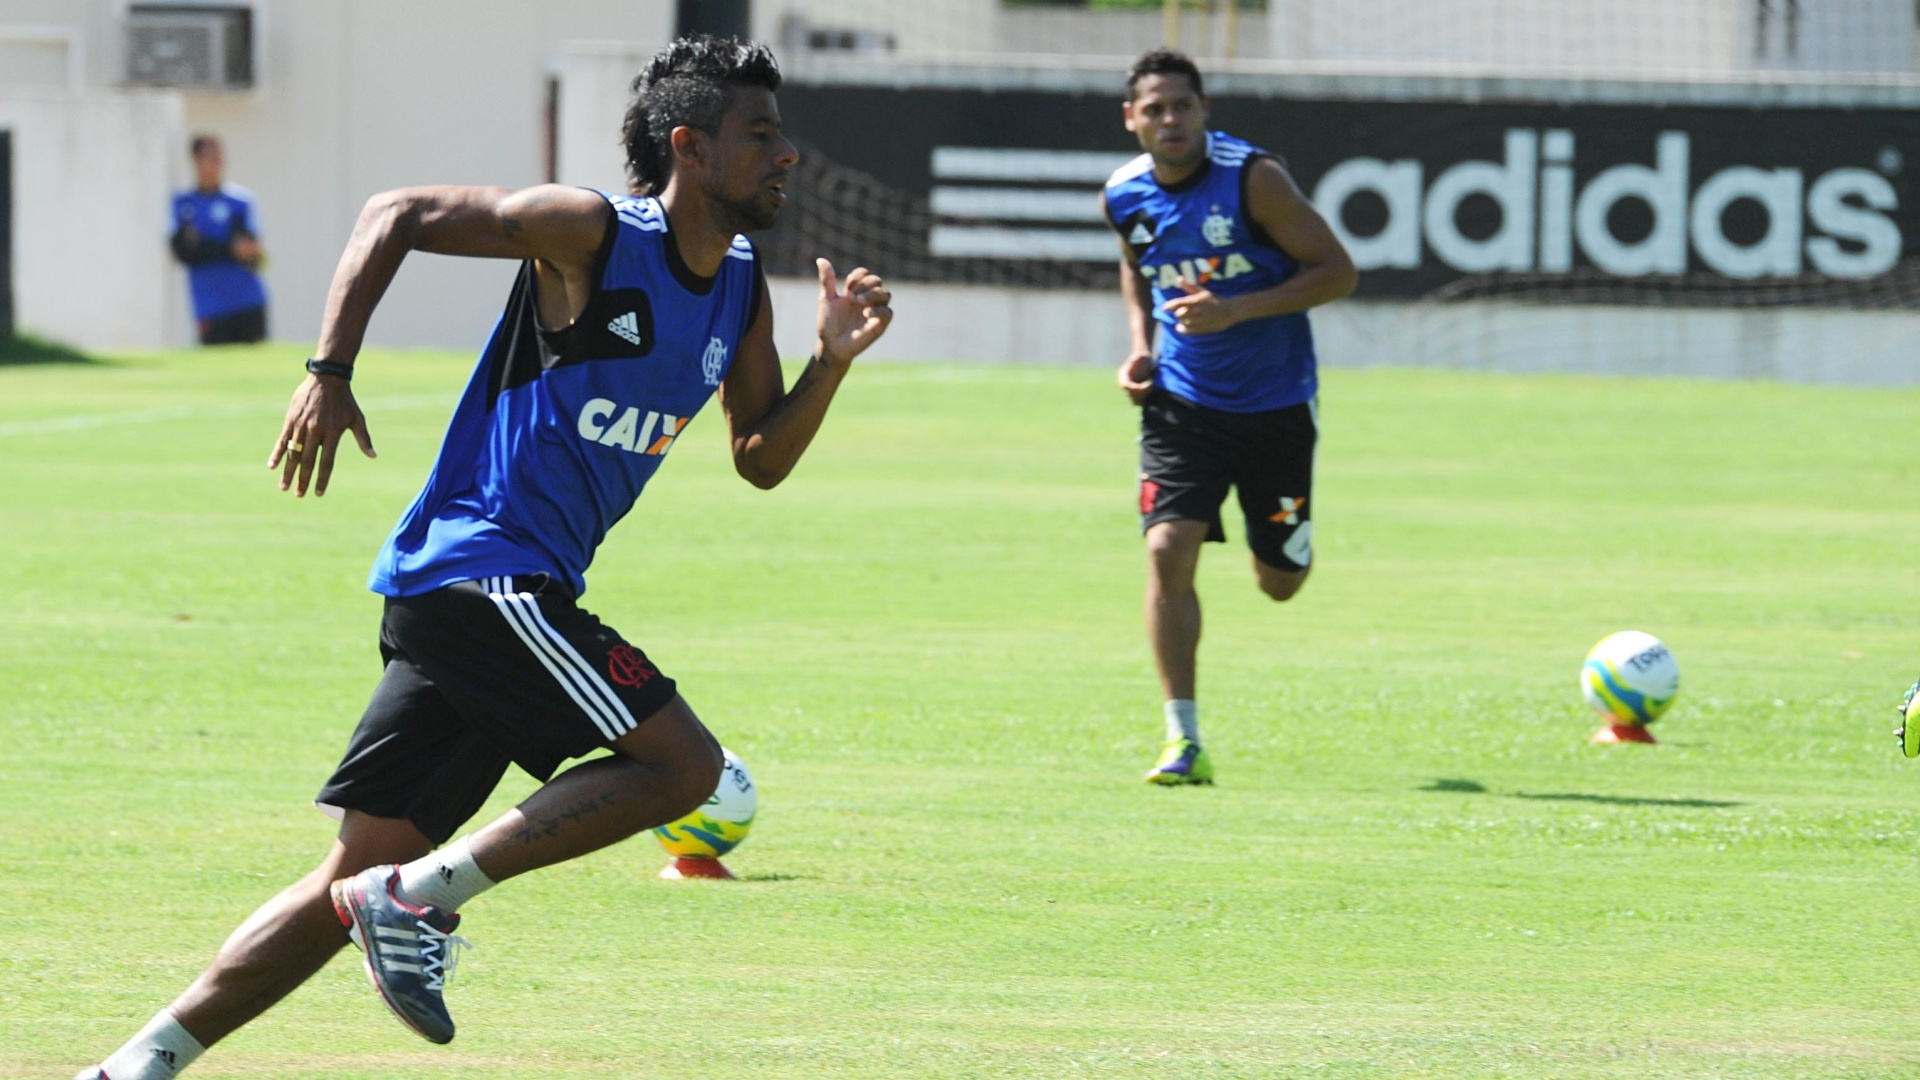 http://imguol.com/c/esporte/2014/01/10/10jan2014---leo-moura-corre-no-ct-do-ninho-do-urubu-durante-a-pre-temporada-do-flamengo-1389365655247_1920x1080.jpg